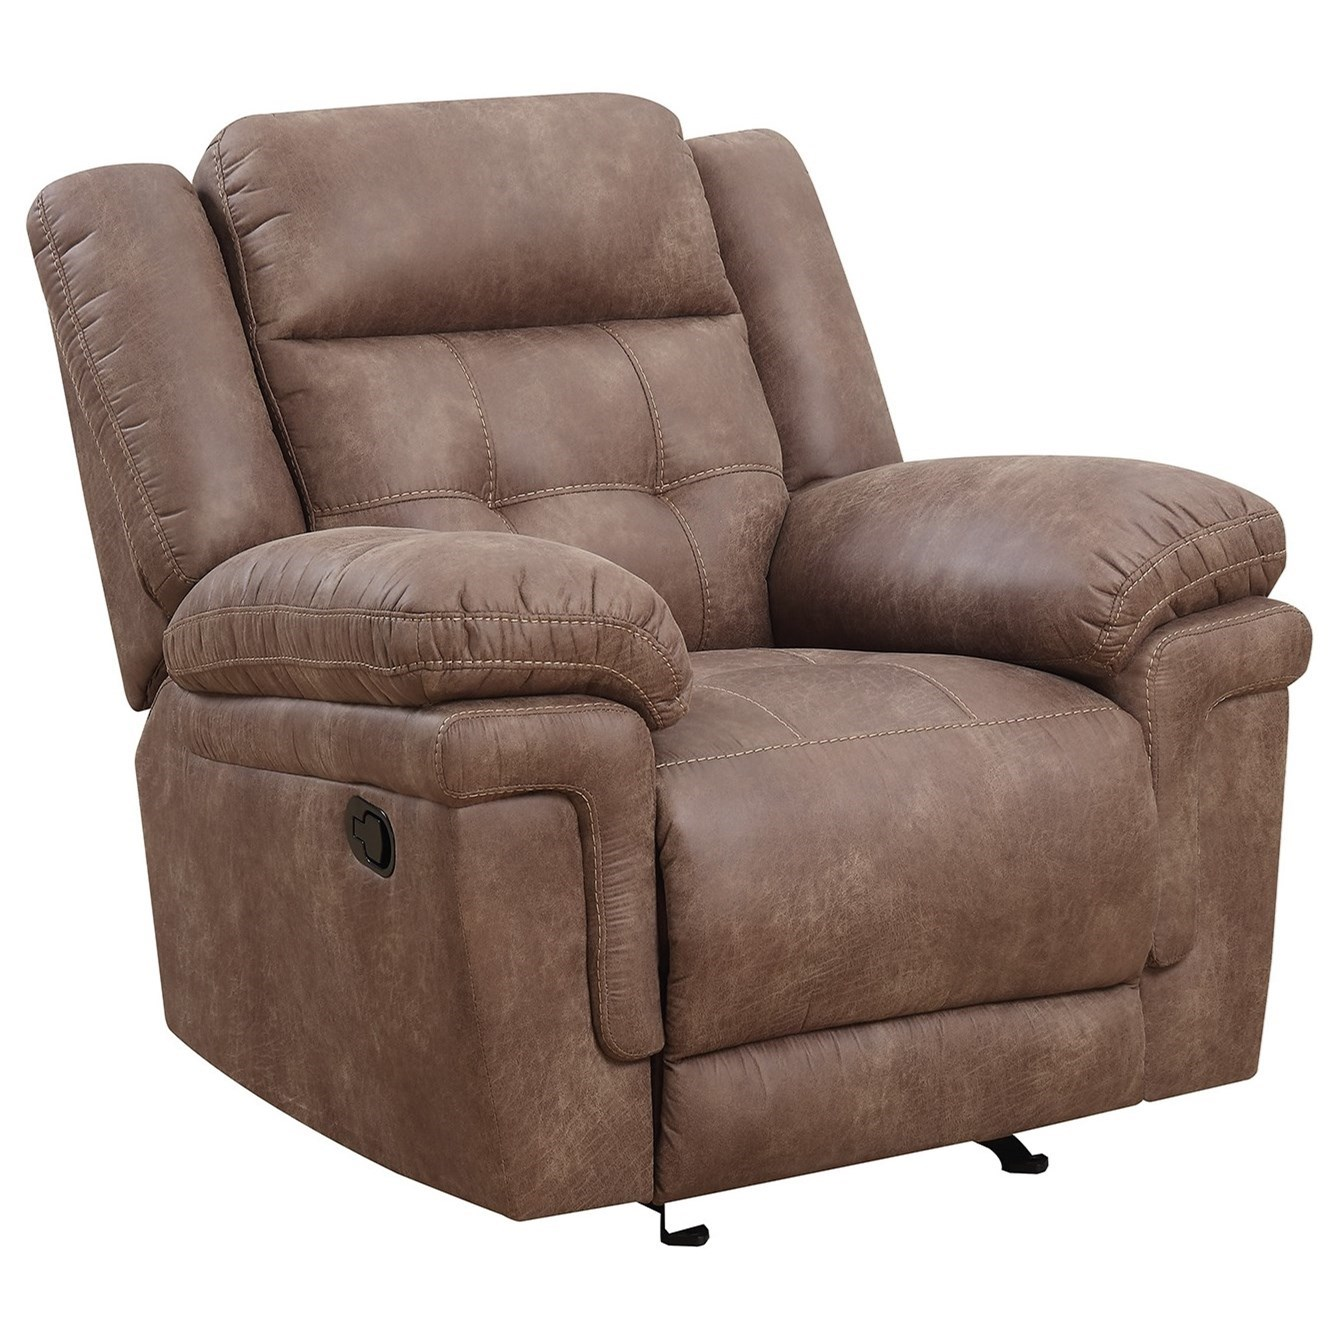 Prime Anastasia Glider Reclining Chair - Item Number: AT850CC